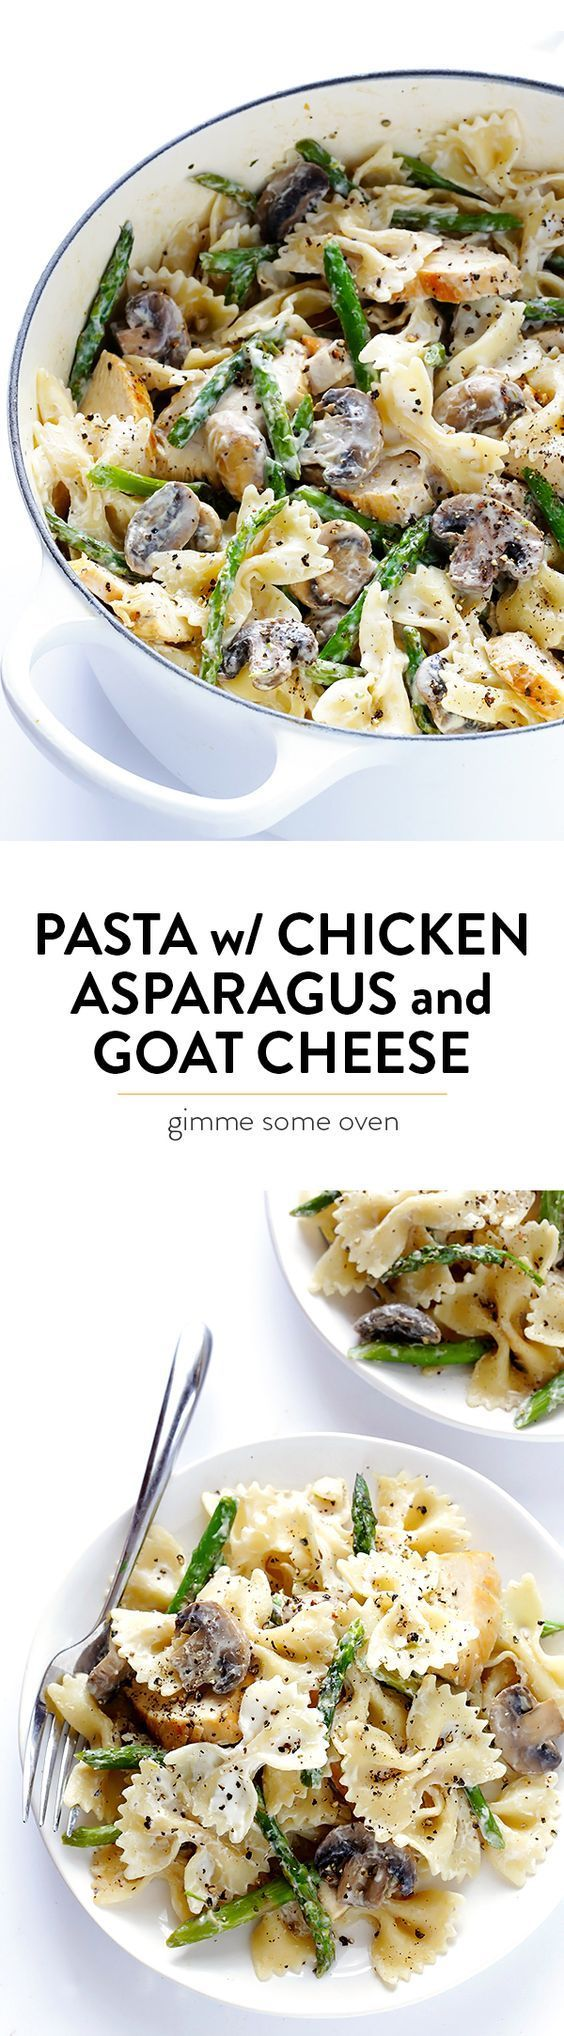 This pasta is ready to go in about 30 minutes, it's made with the easiest goat cheese sauce EVER, and it's wonderfully hearty and delicious! | gimmesomeoven.com